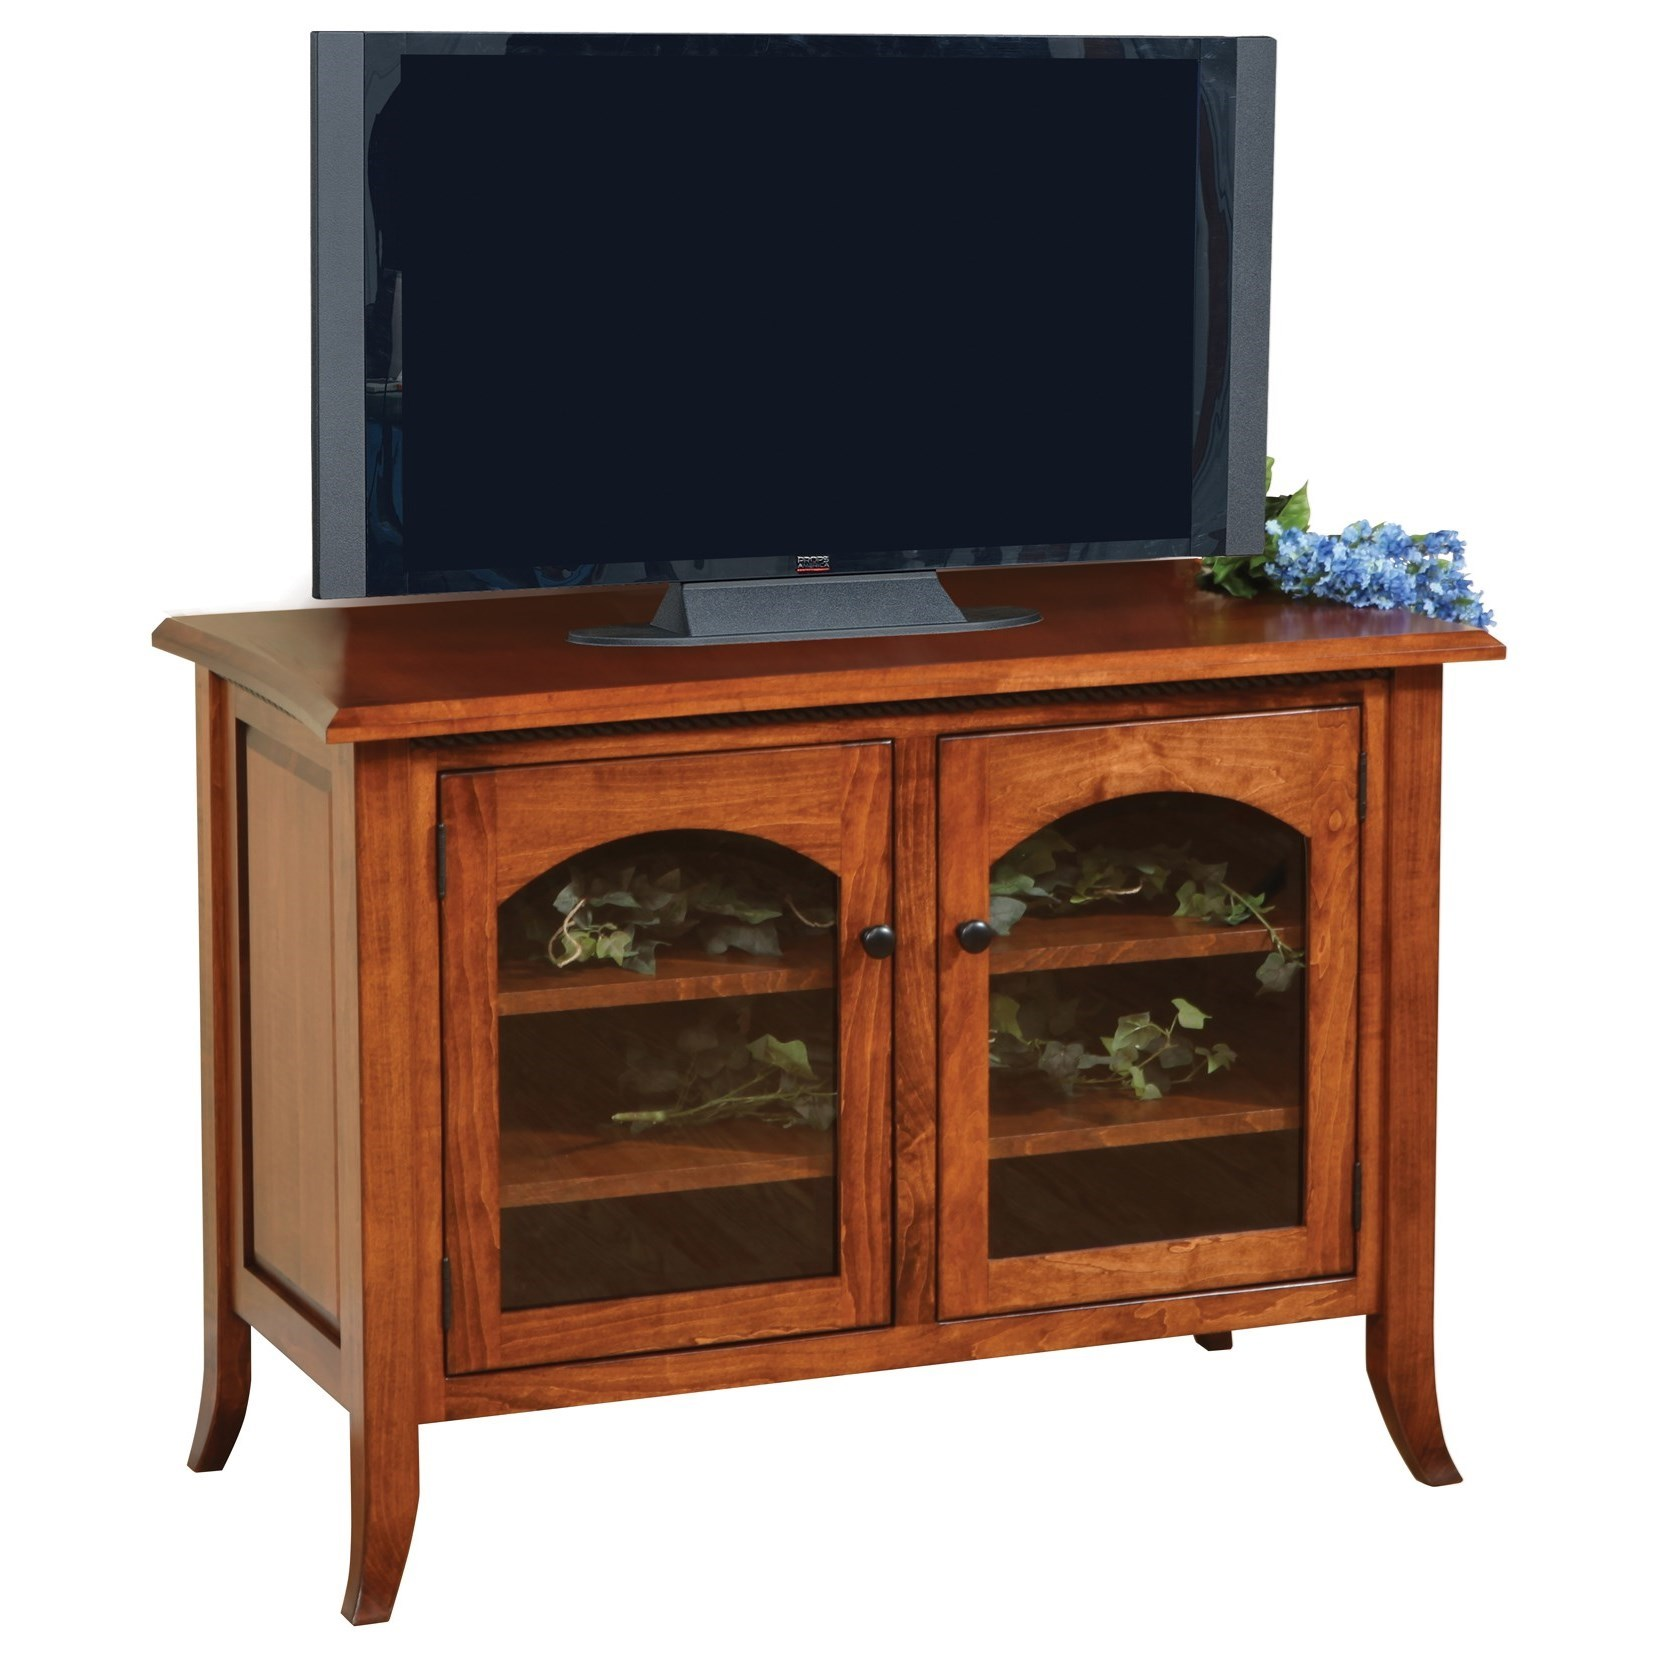 "Bunker Hill 40"" Customizable TV Stand by Ashery Oak at Saugerties Furniture Mart"